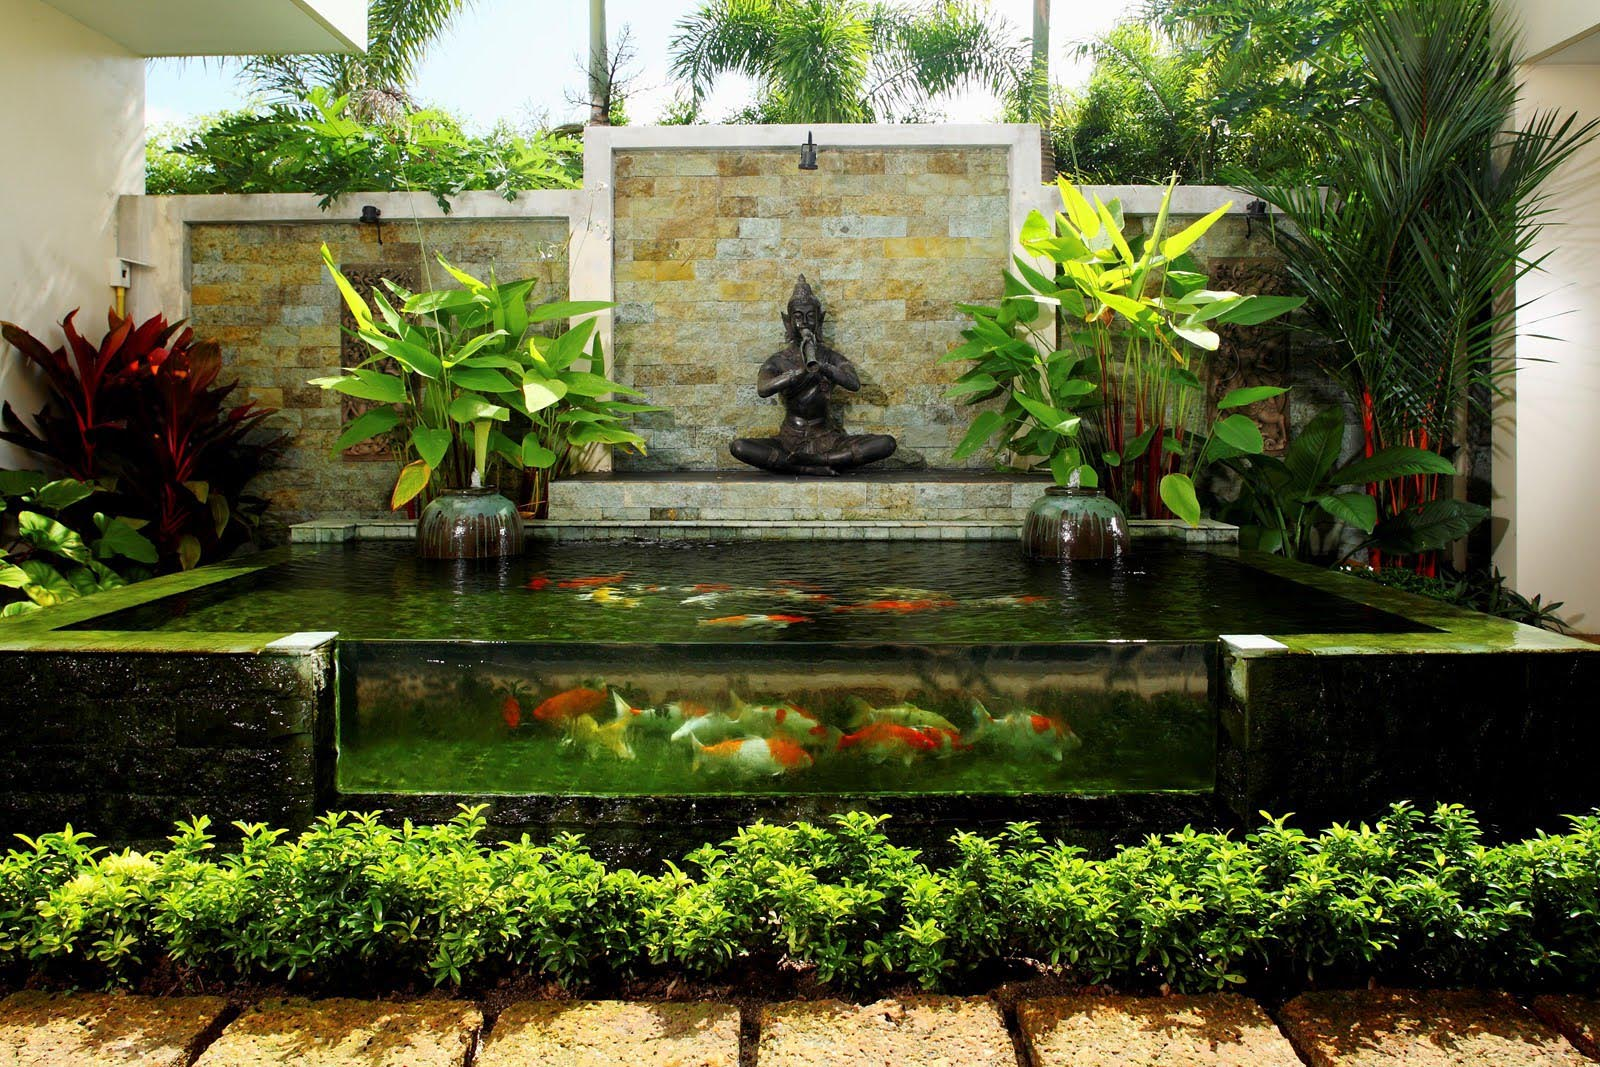 Building garden pond fountains backyard design ideas for Garden with a pond